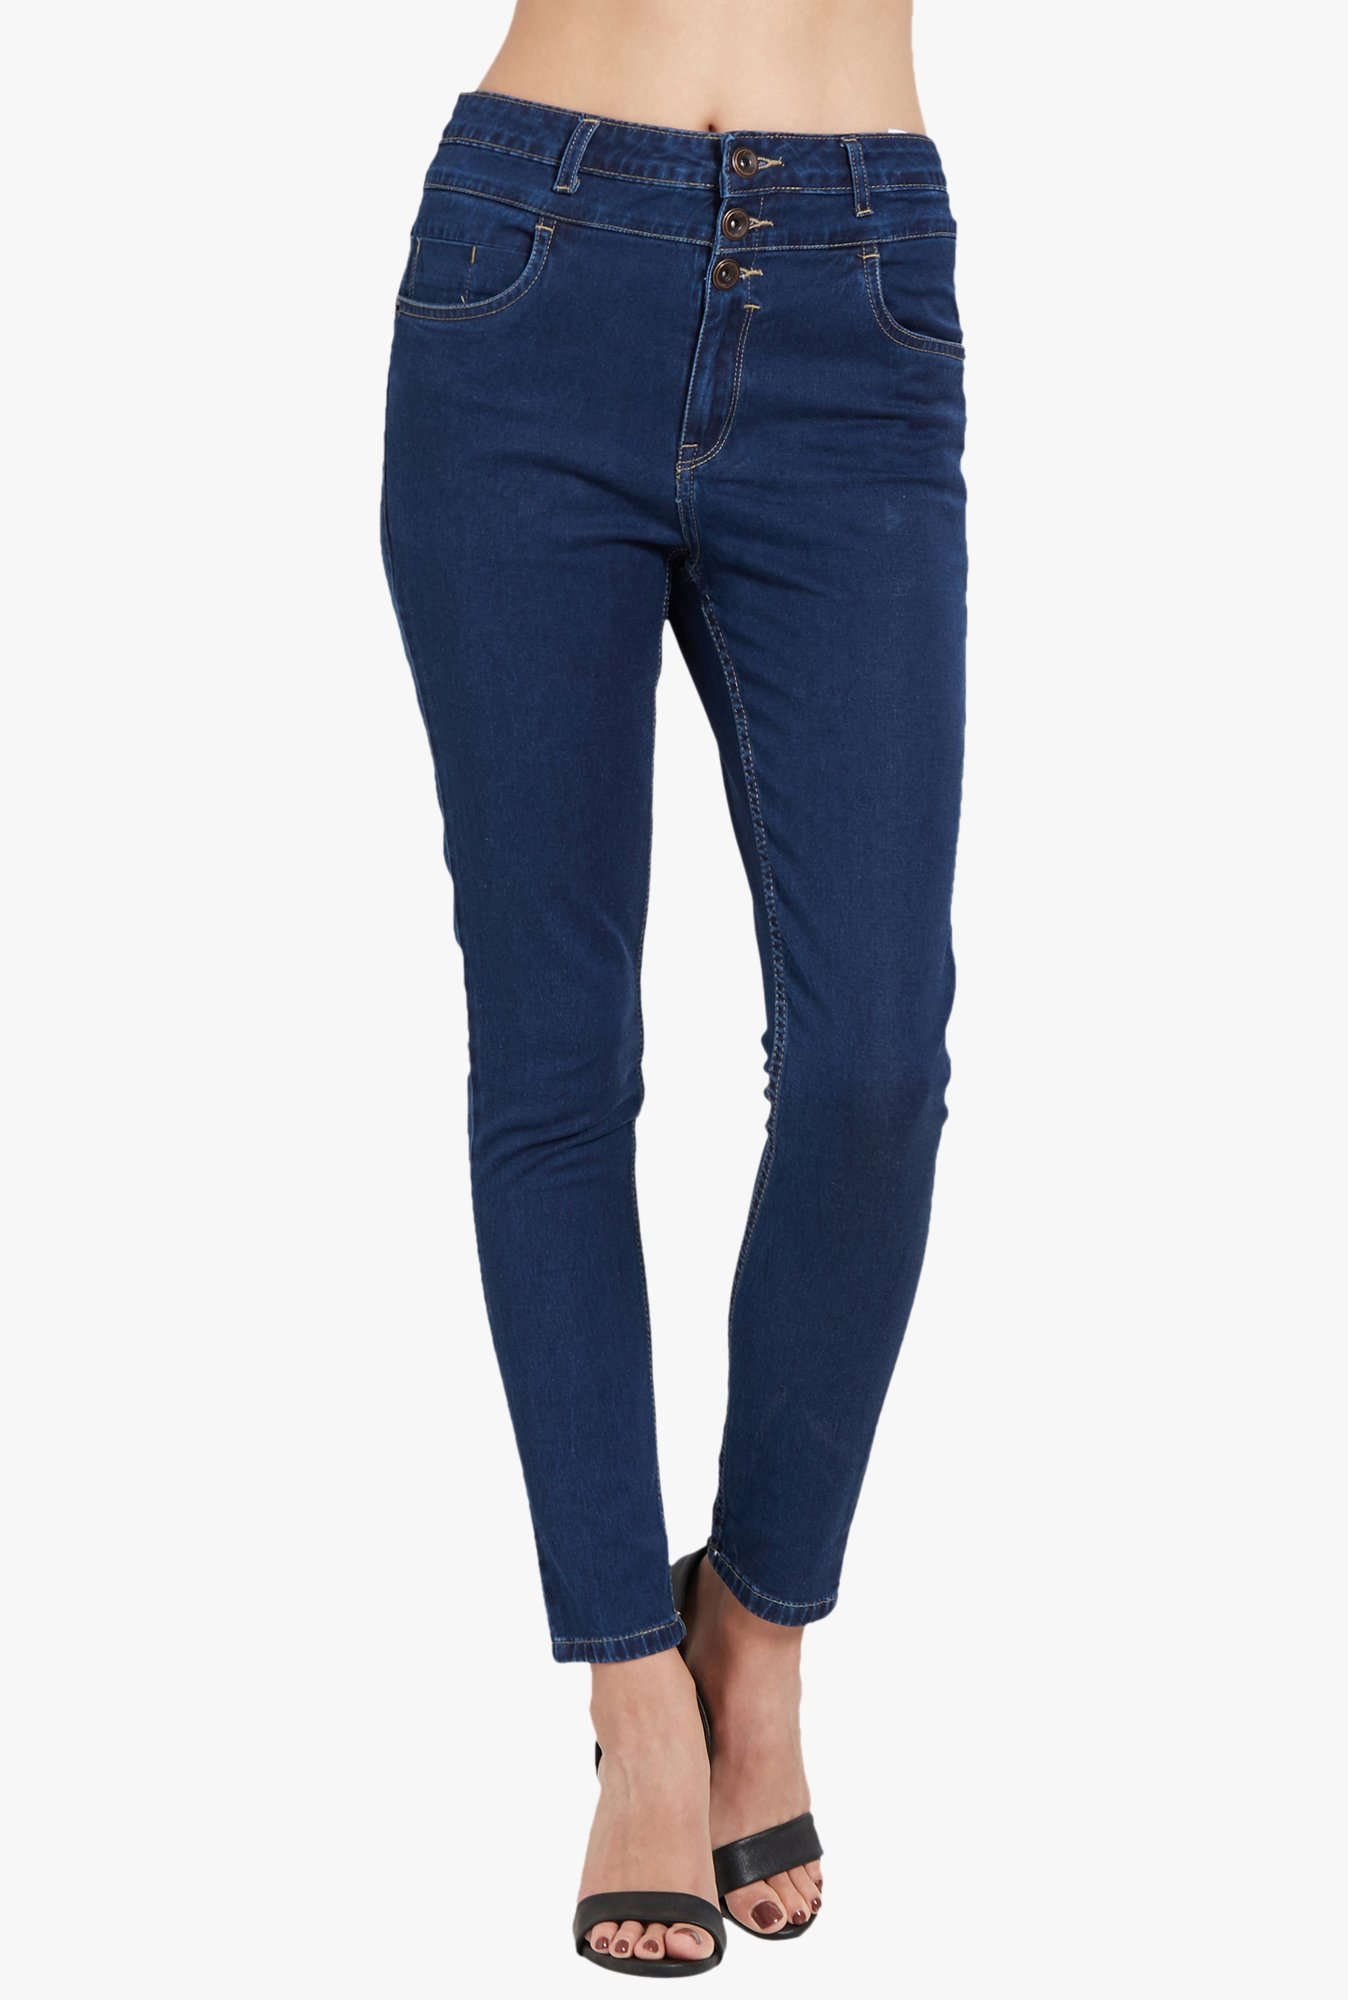 Find great deals on eBay for raw selvedge denim. Shop with confidence. Skip to main content. eBay: GUSTIN Selvedge California Mens Raw Denim Blue Jeans - Skinny Slim Tapered 34x37 See more like this. Levi's Made in USA Men's Slim Fit Cone Raw Selvedge Denim Jeans .